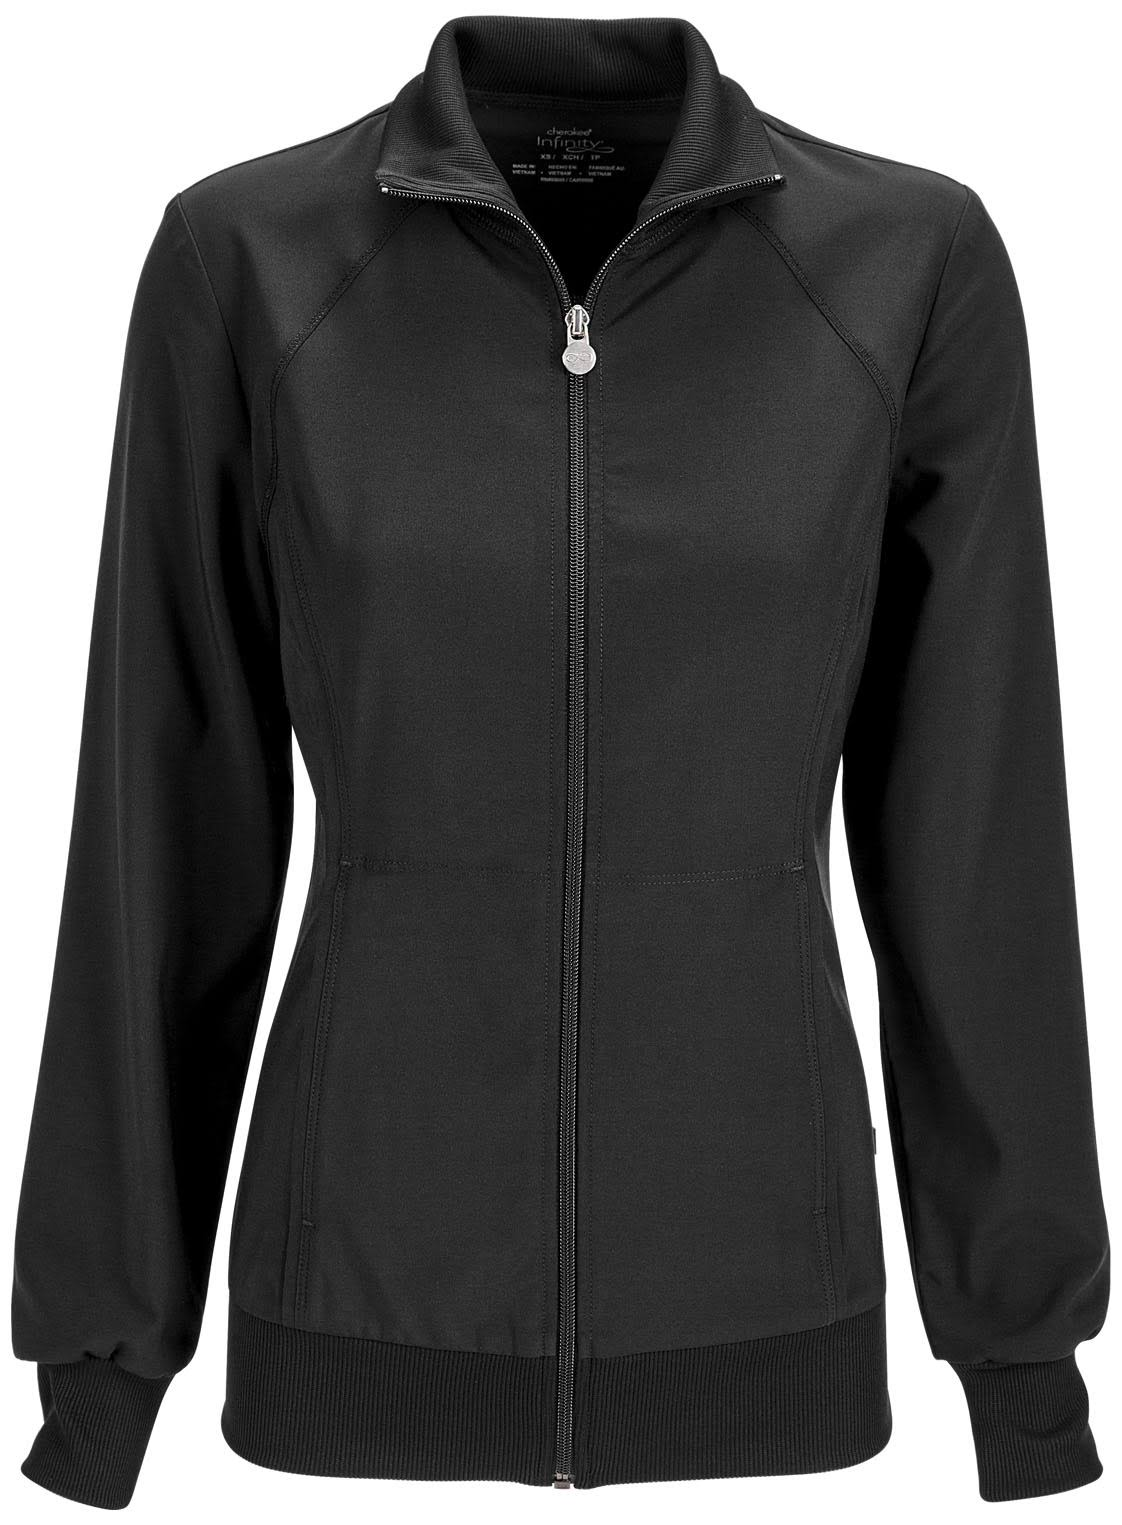 Cherokee Zip Front Warm-Up Jacket - Black